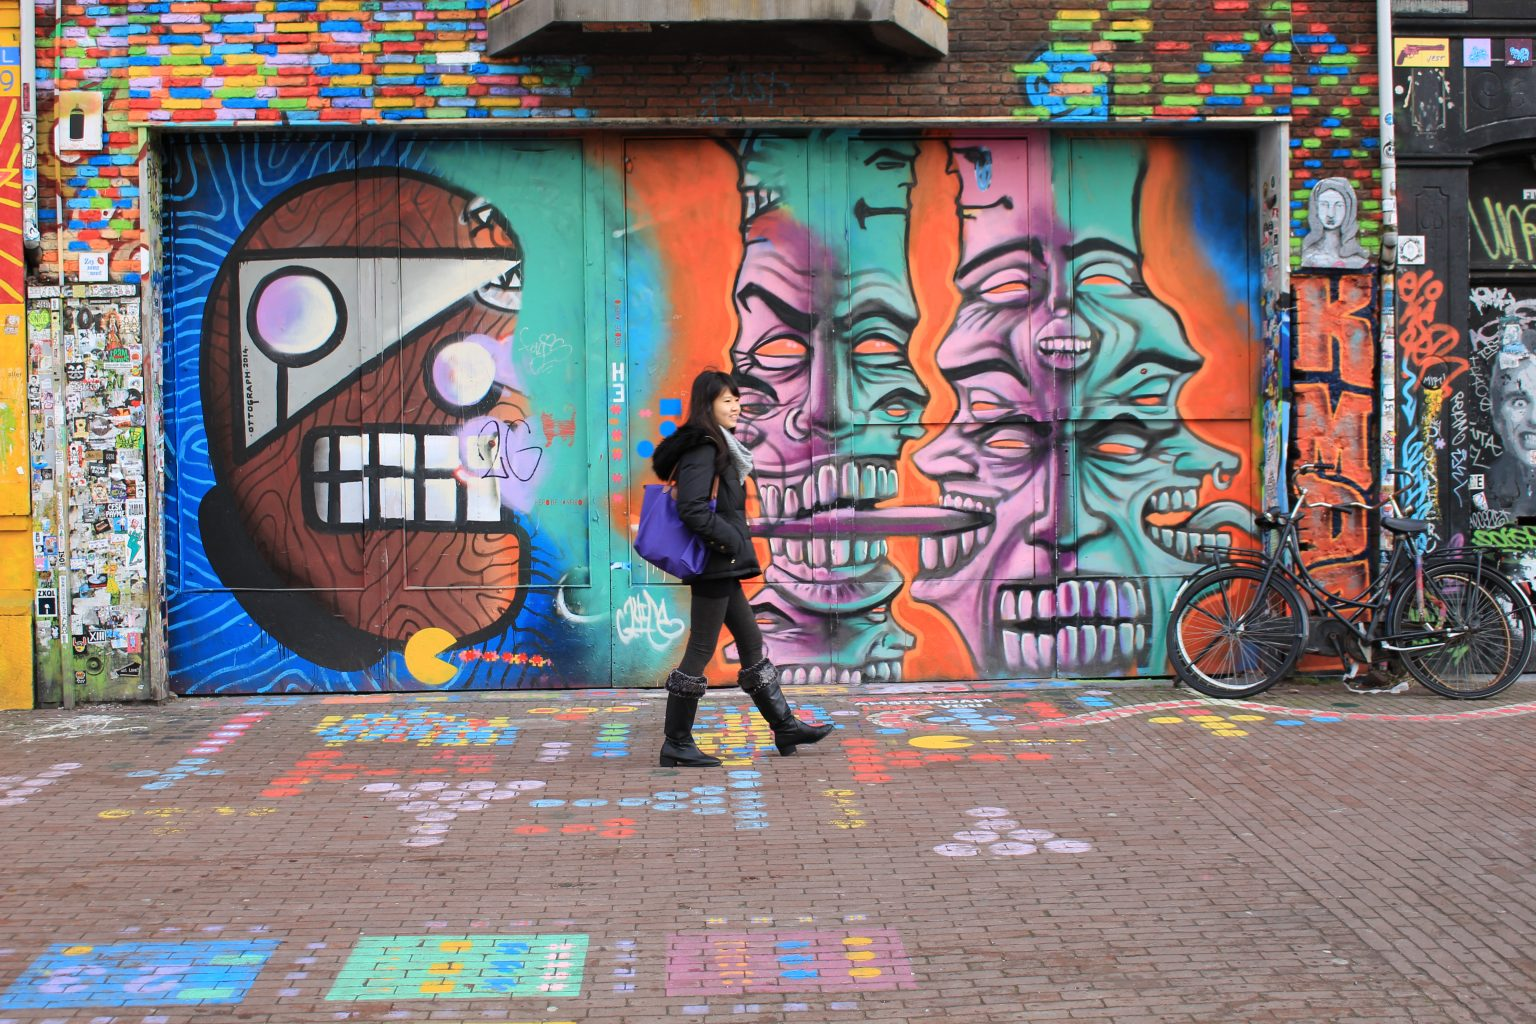 graffiti, street art, amsterdam famous for, Visiting Amsterdam for the First Time